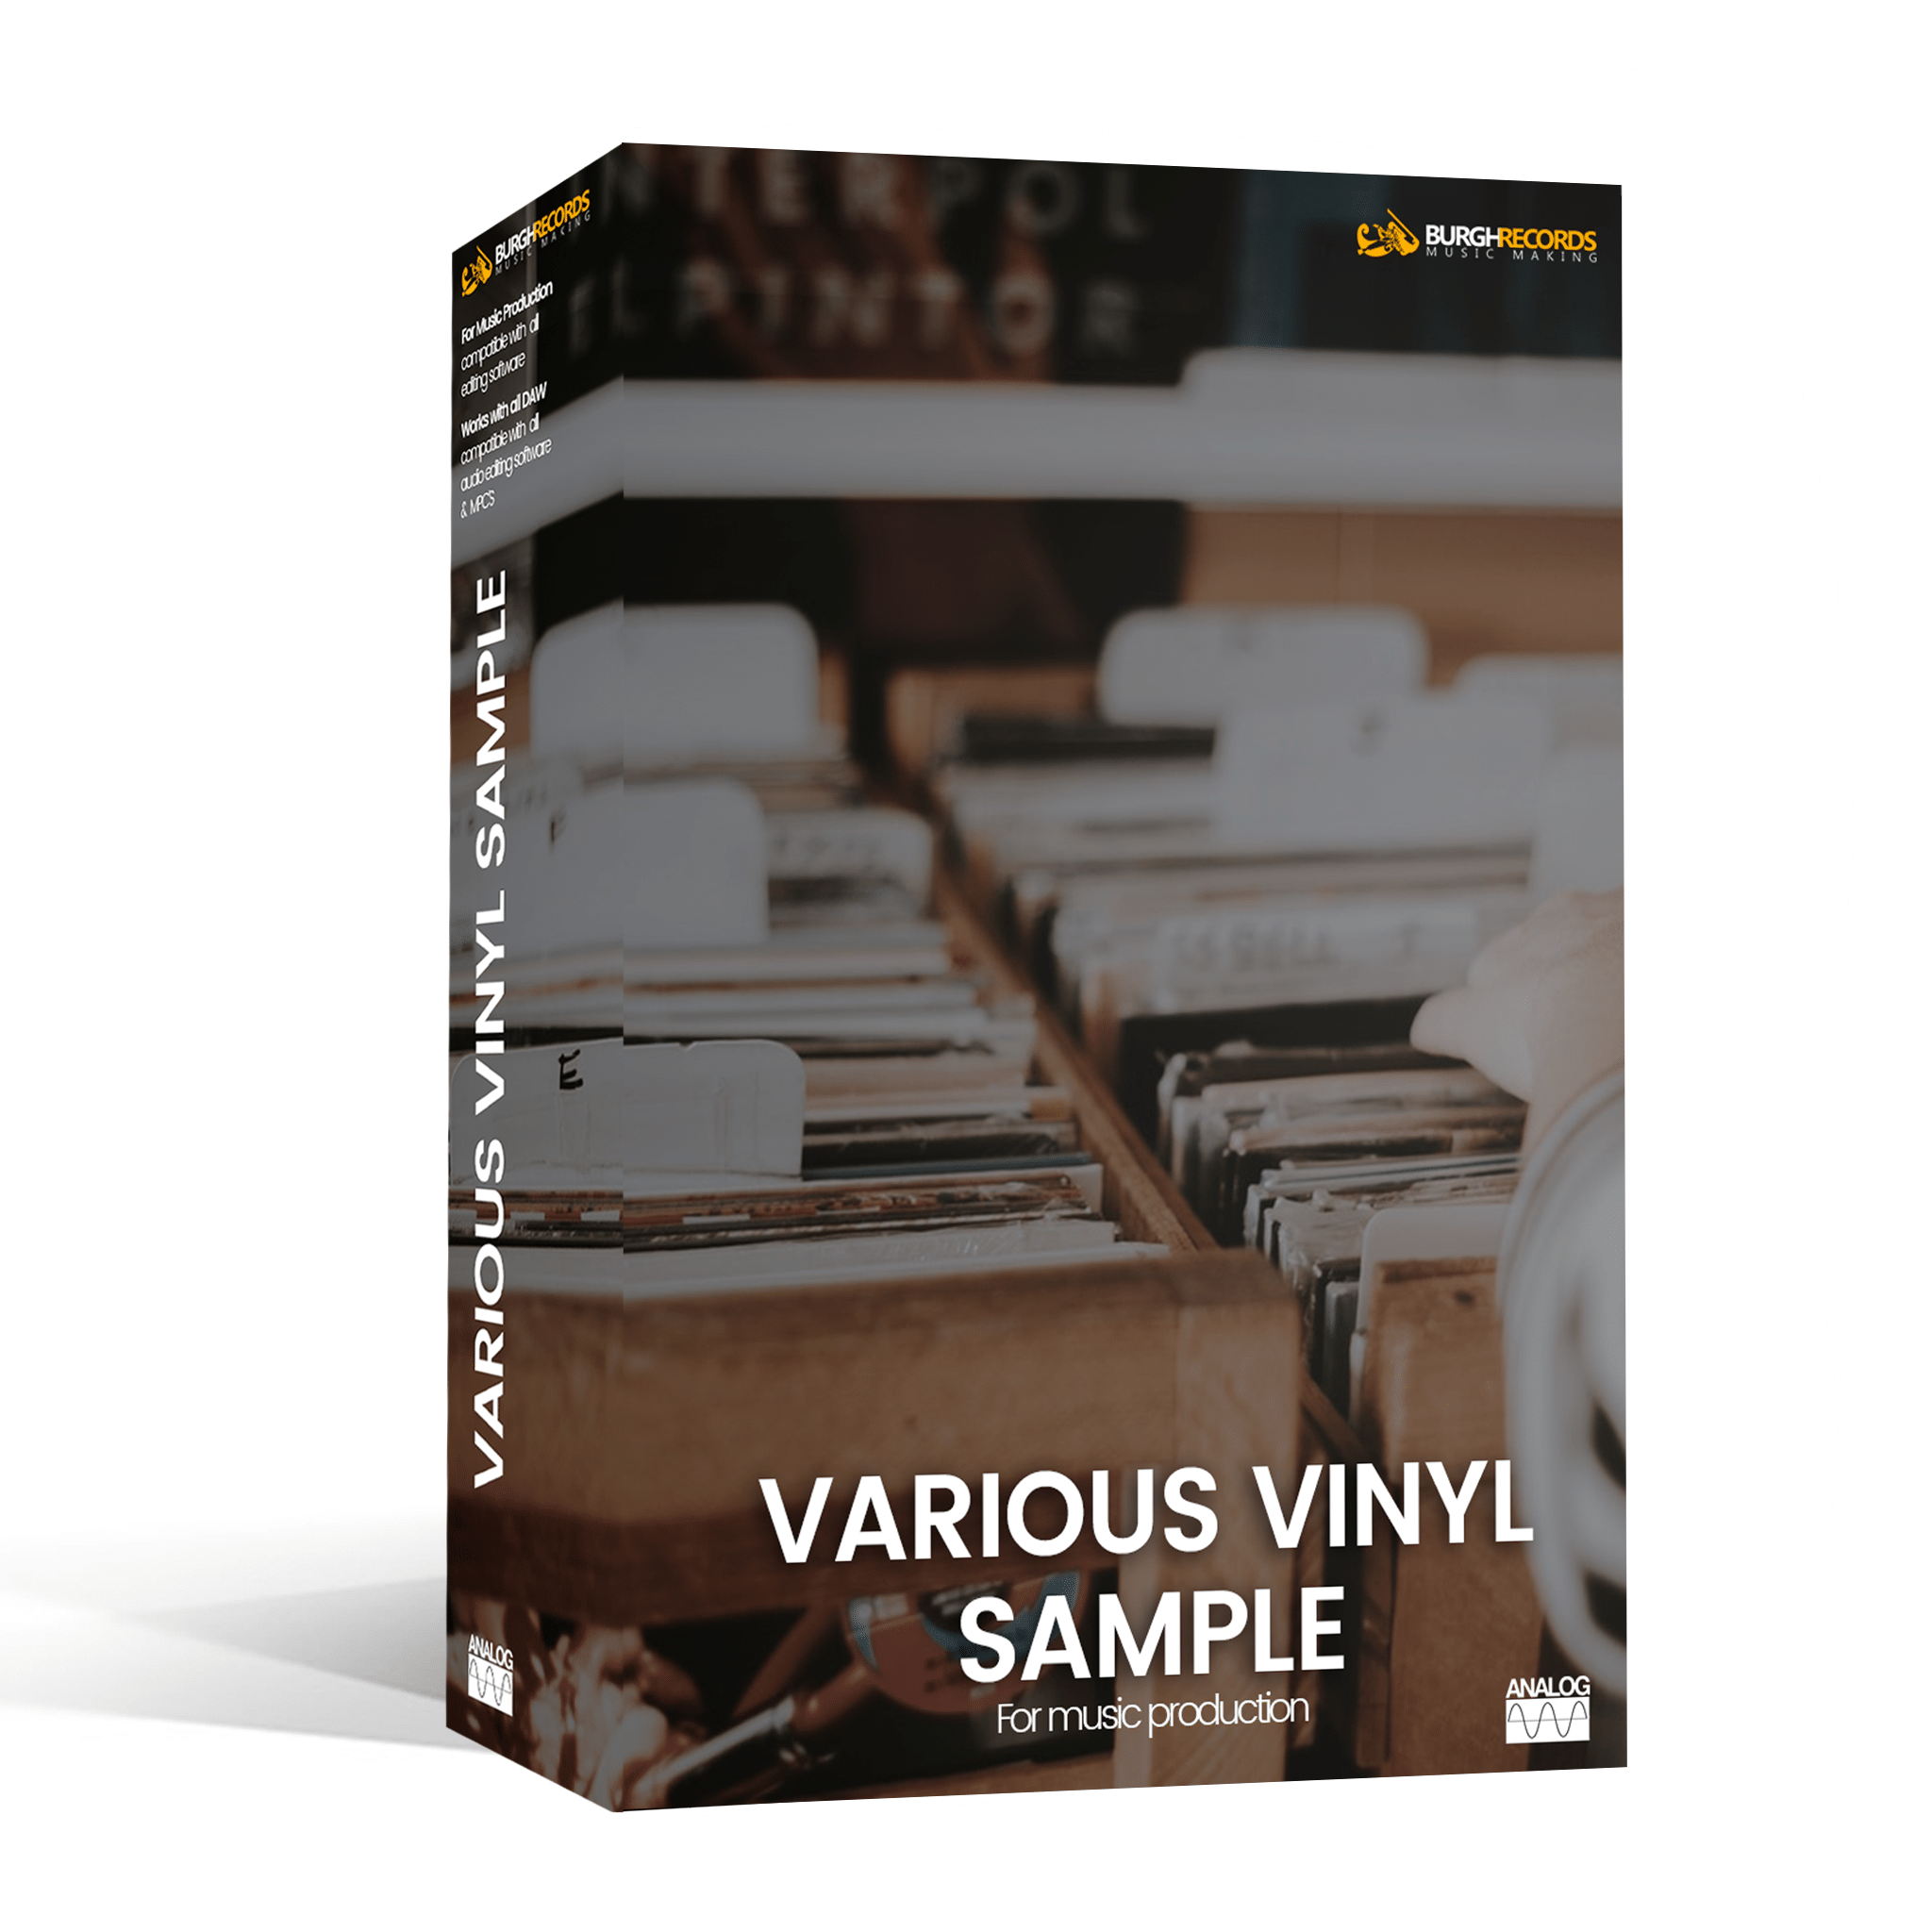 Various Vinyl Samples Burghrecords Music Production